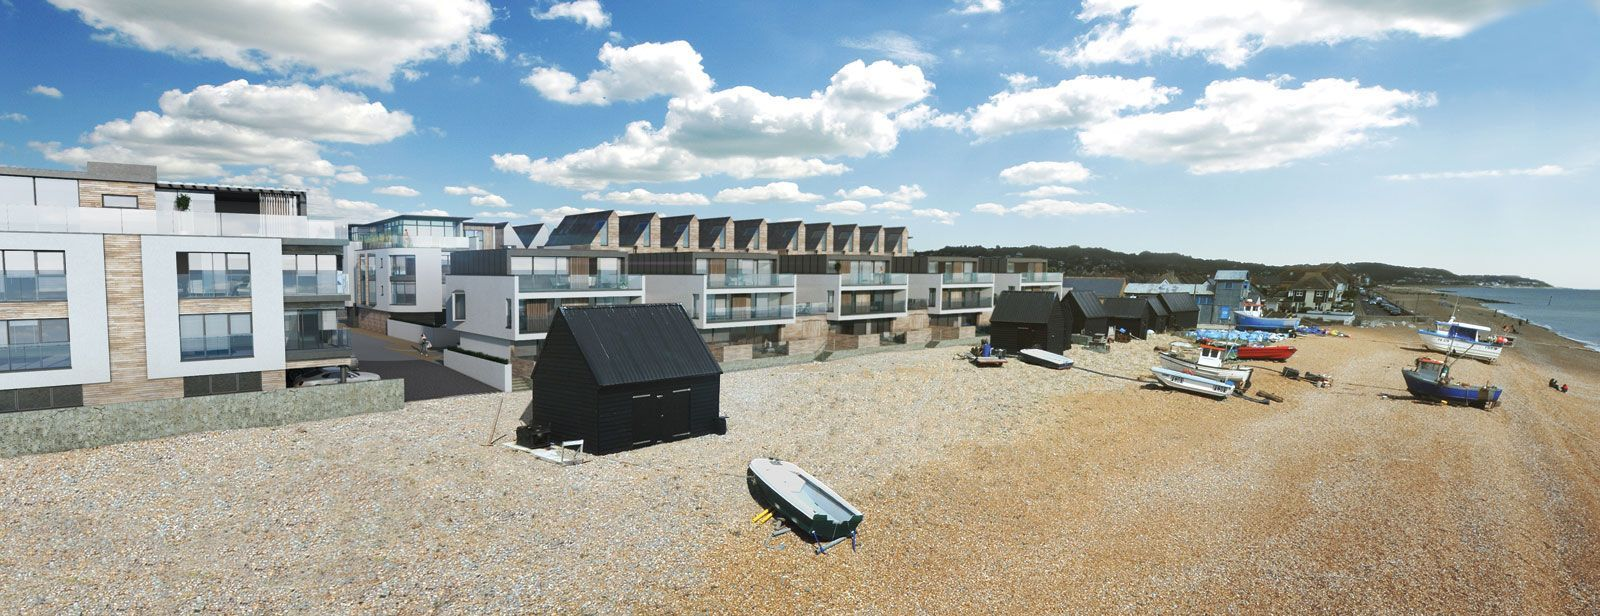 Fishermans Beach, Hythe, Range Road Villas Development